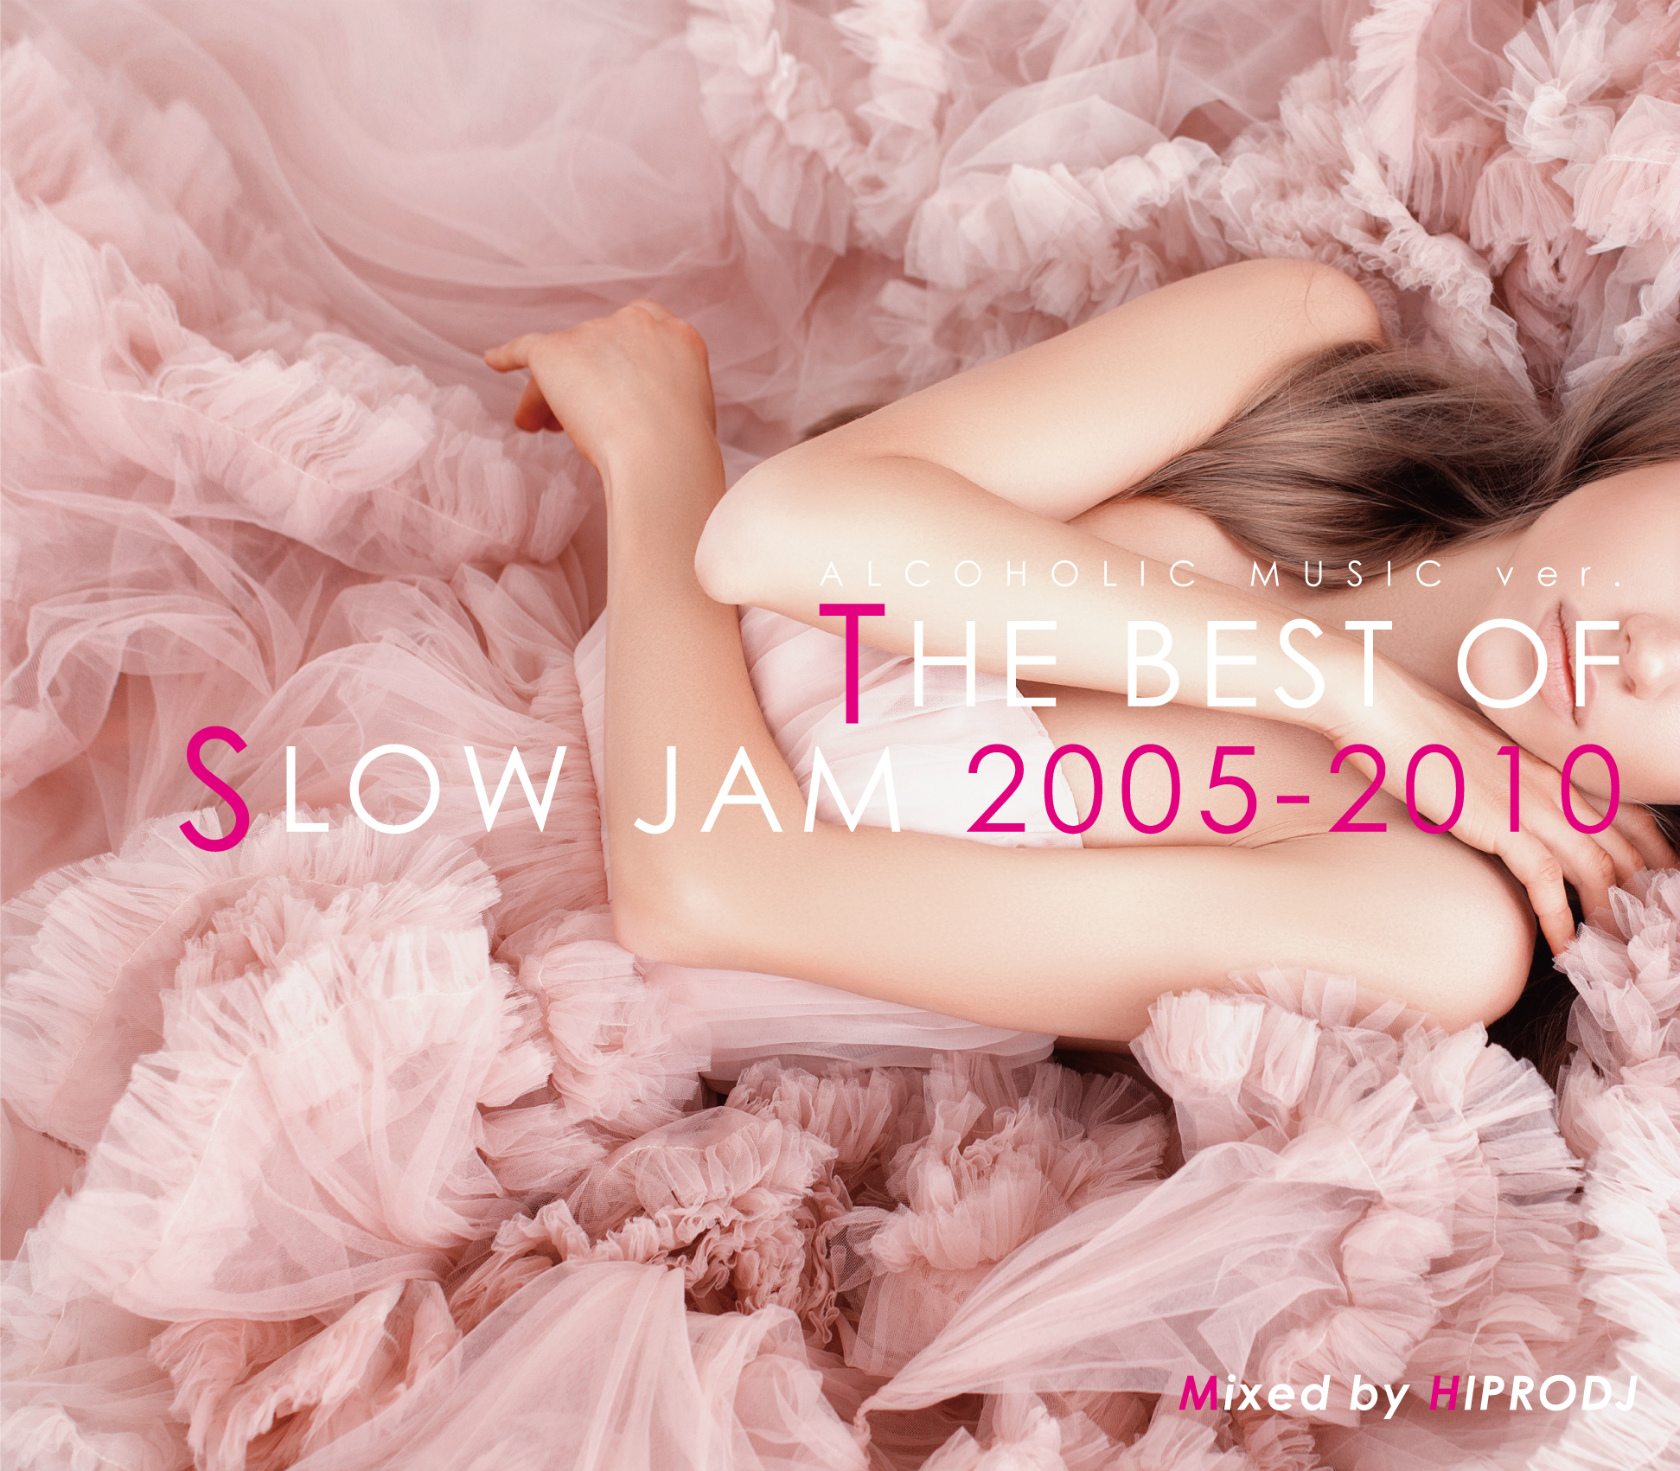 【1枚組】 ALCOHOLIC MUSIC ver. THE BEST OF SLOW JAM 2005-2010 / HIPRODJ 【[国内盤MIX CD】